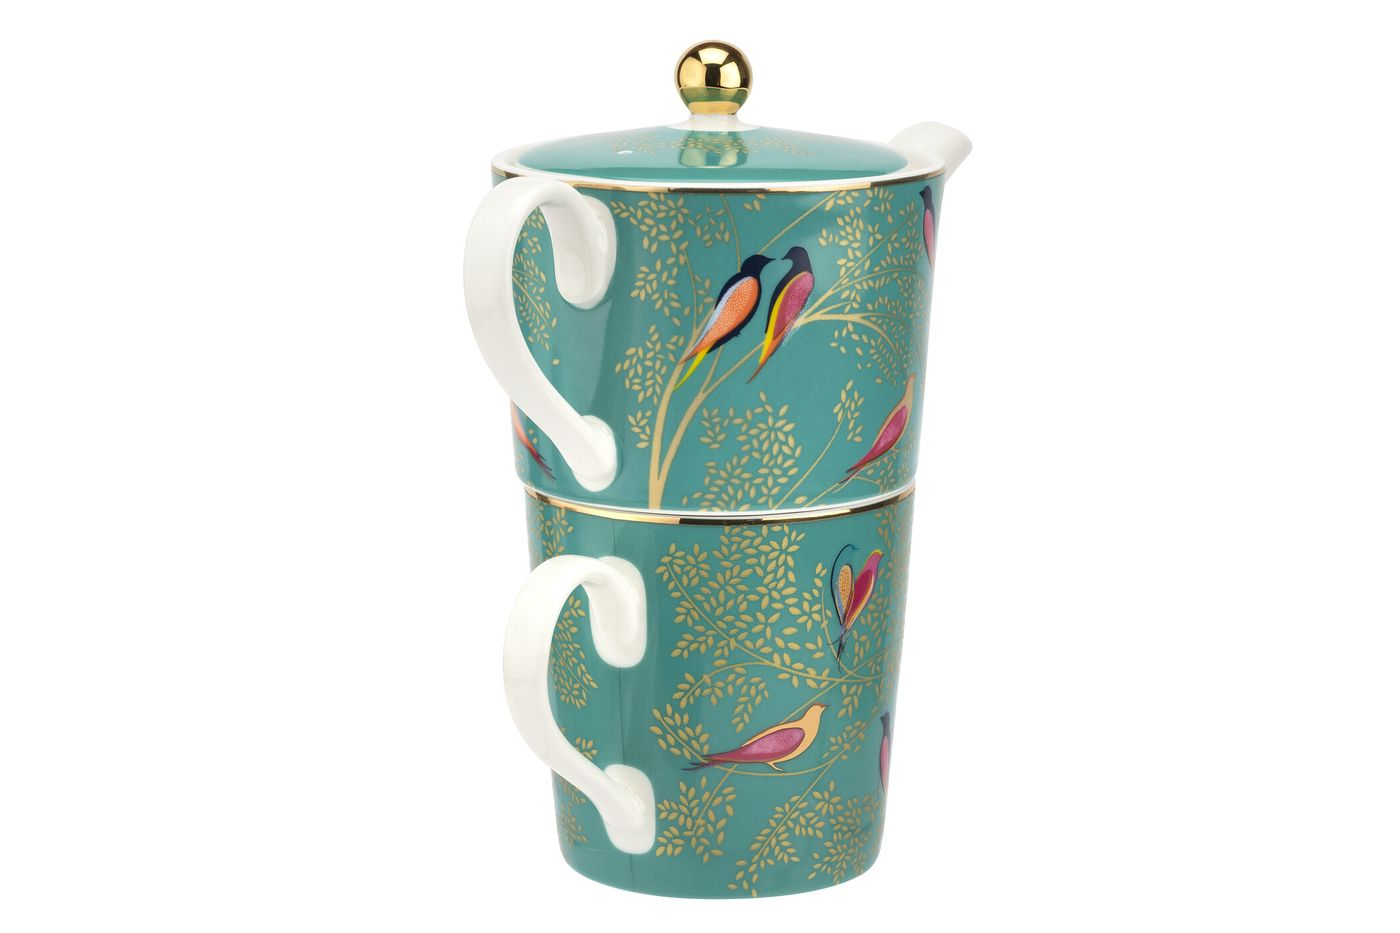 Sara Miller London for Portmeirion Chelsea Collection Tea For One Green 0.35l thumb 2